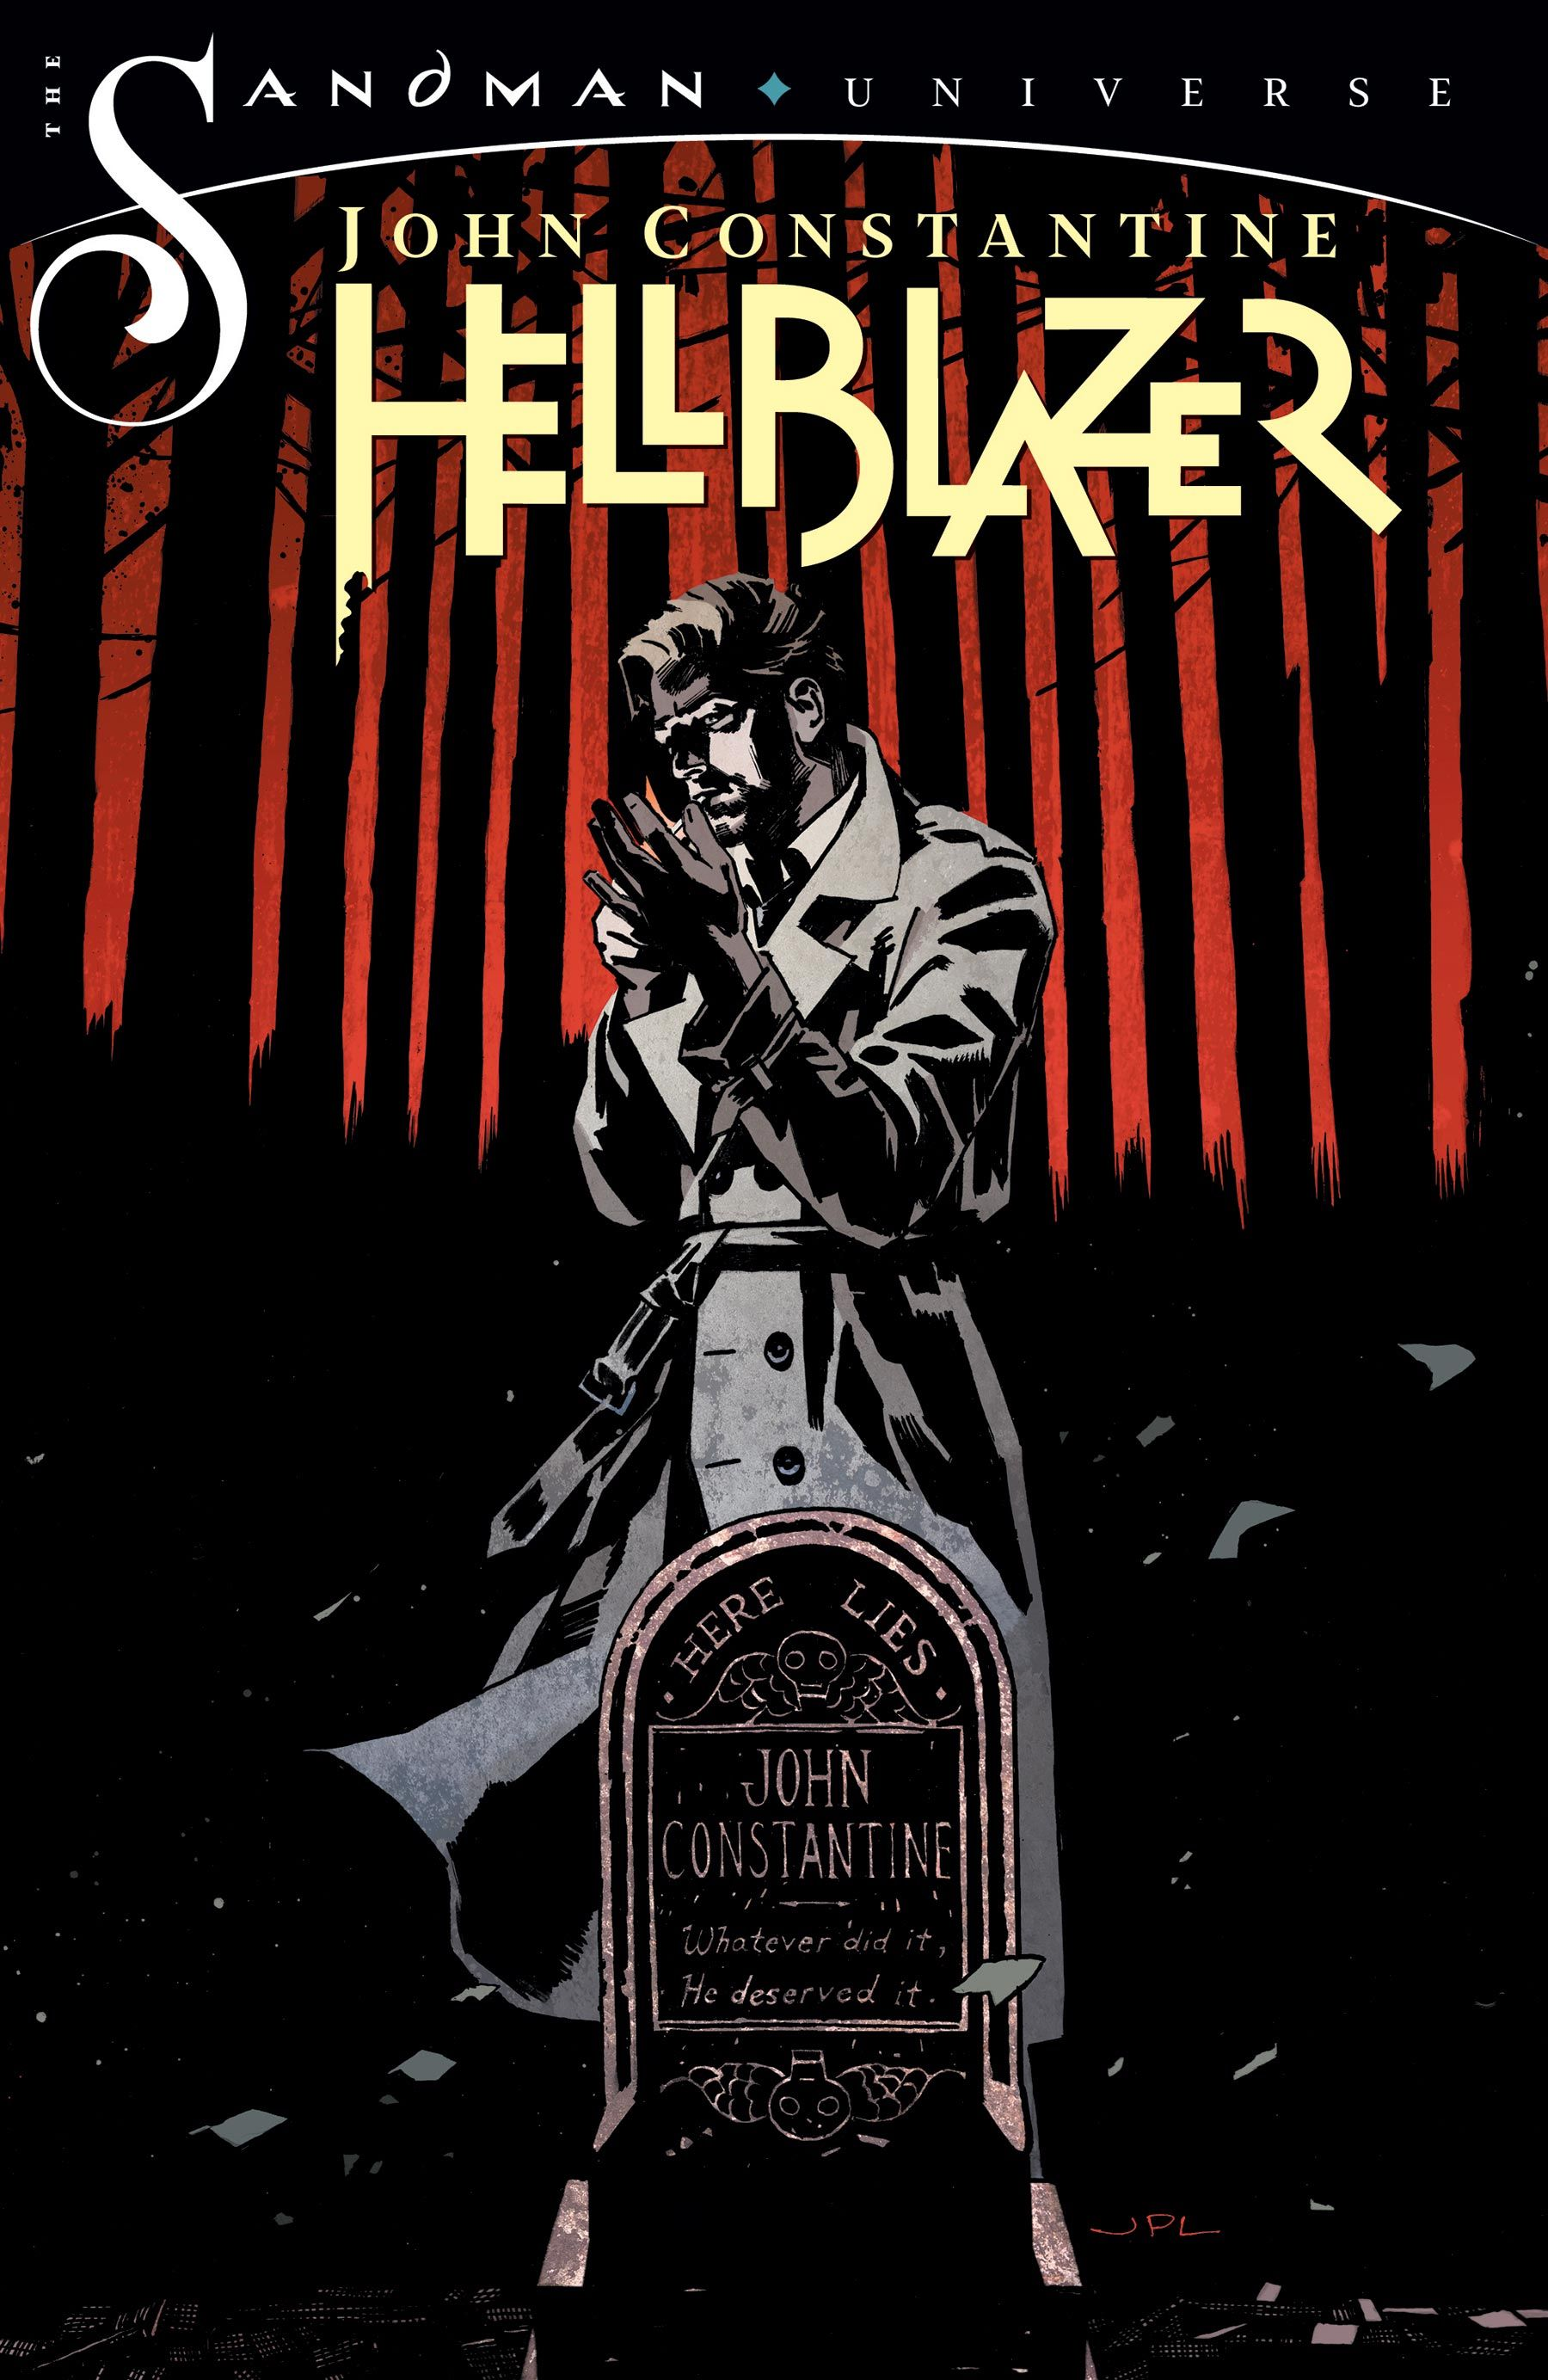 John Constantine Joins The Sandman Universe This Fall